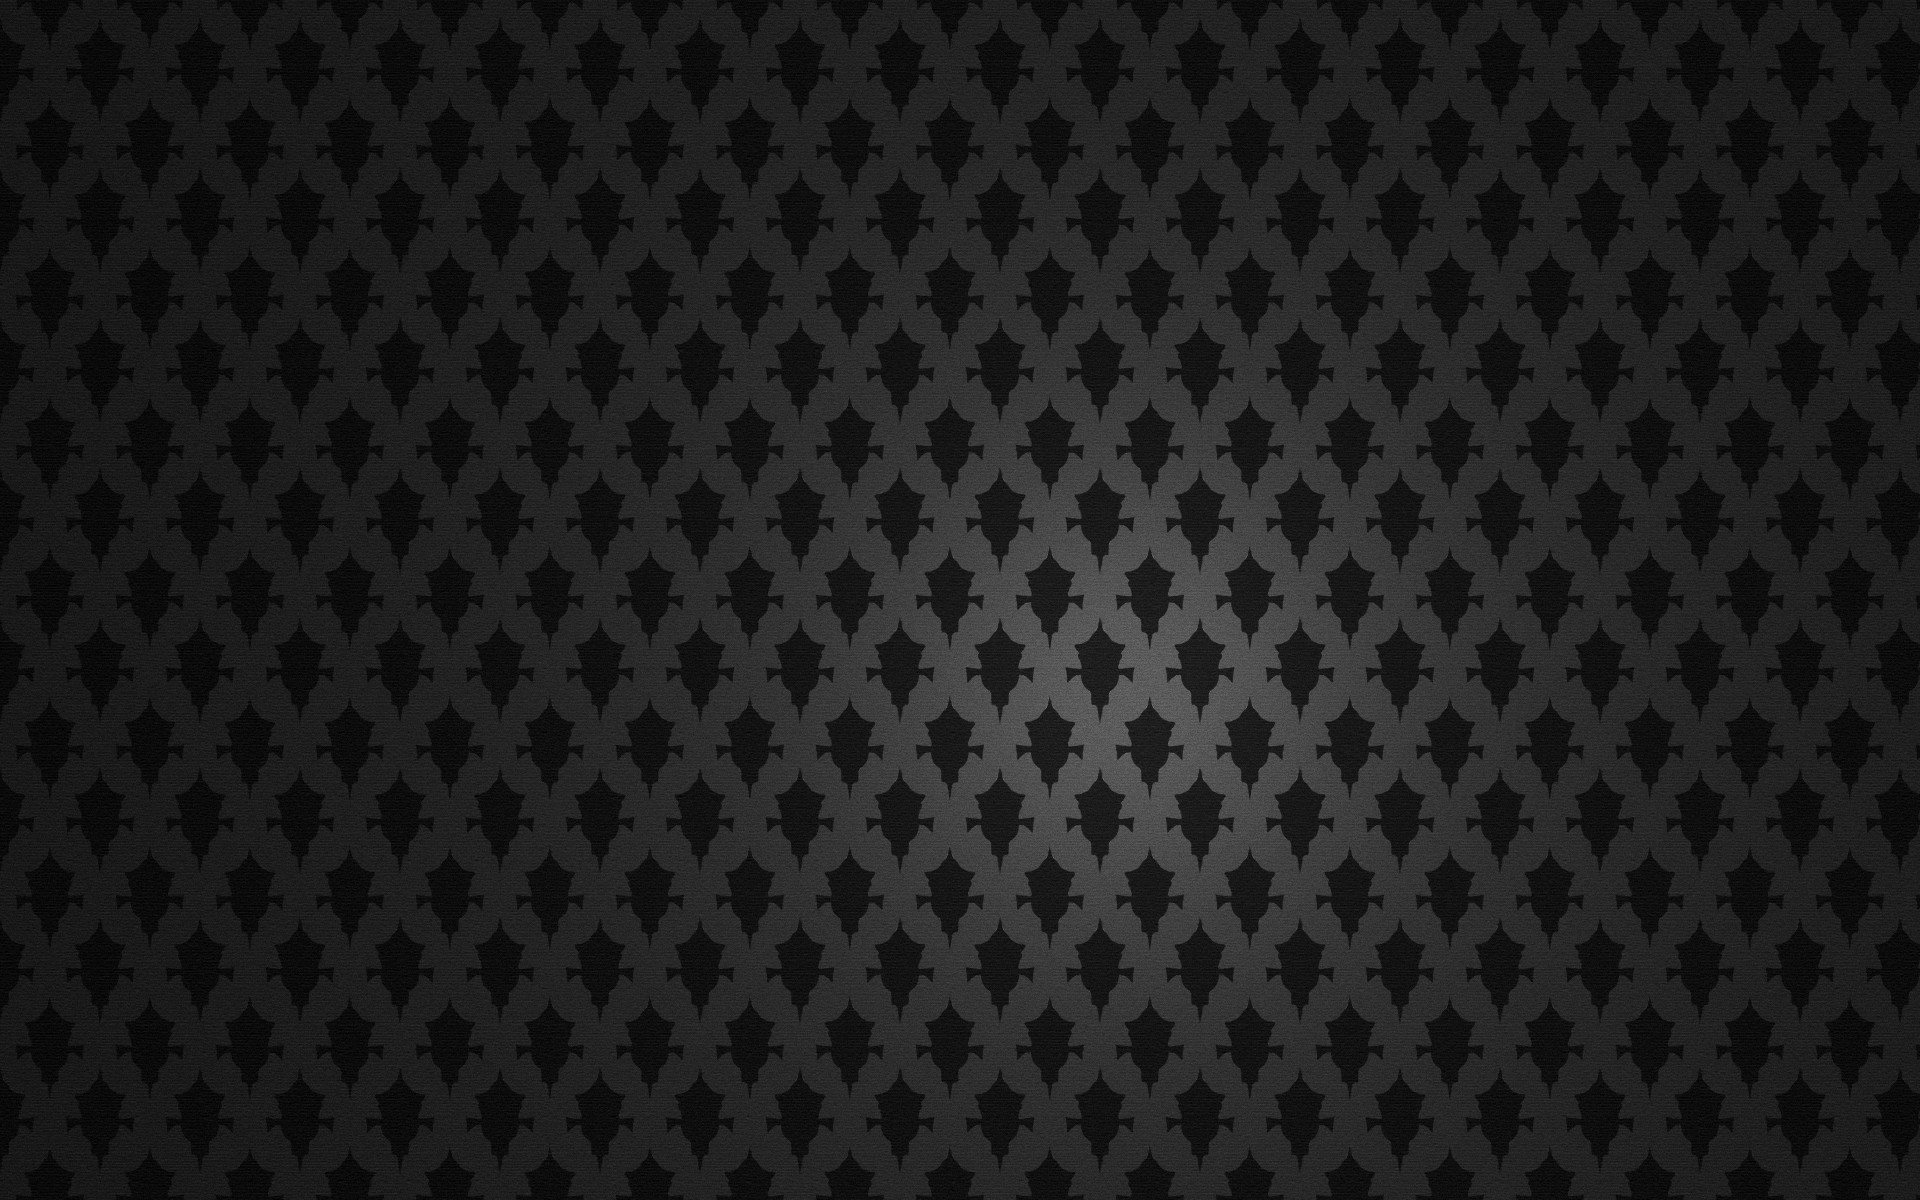 Black Wallpaper Texture 77 Images